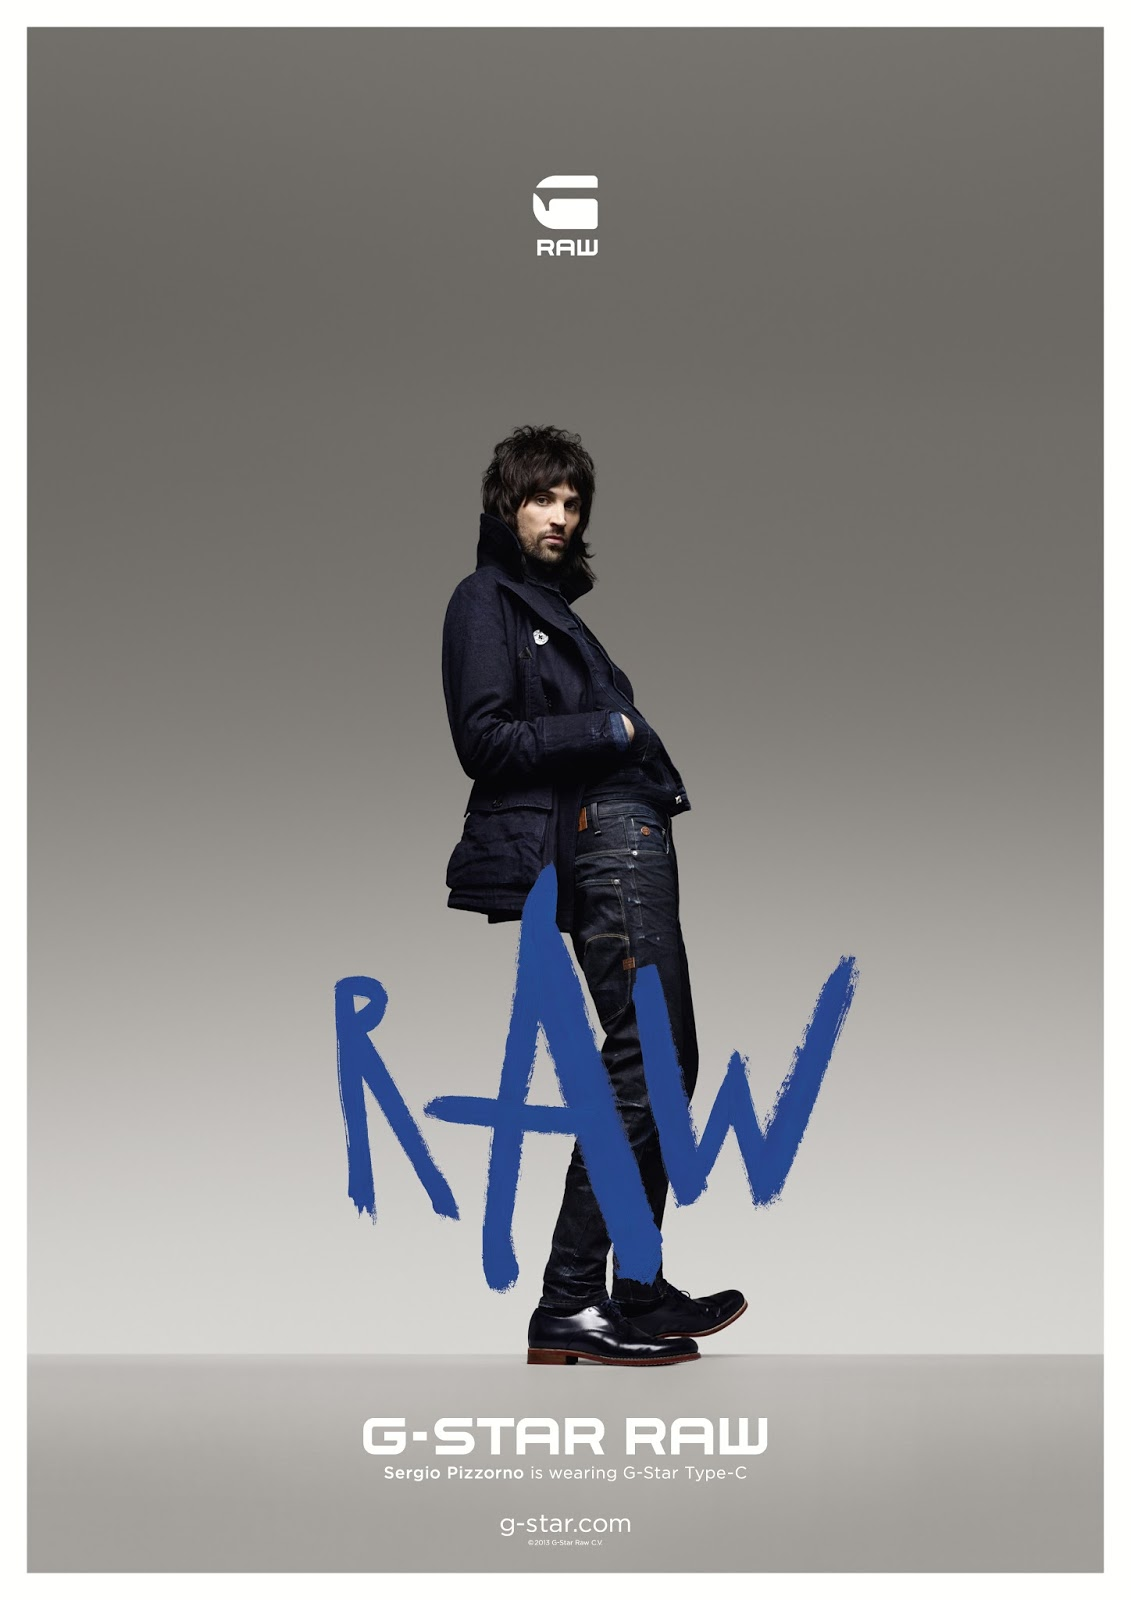 G-Star RAW AW13 Campaign